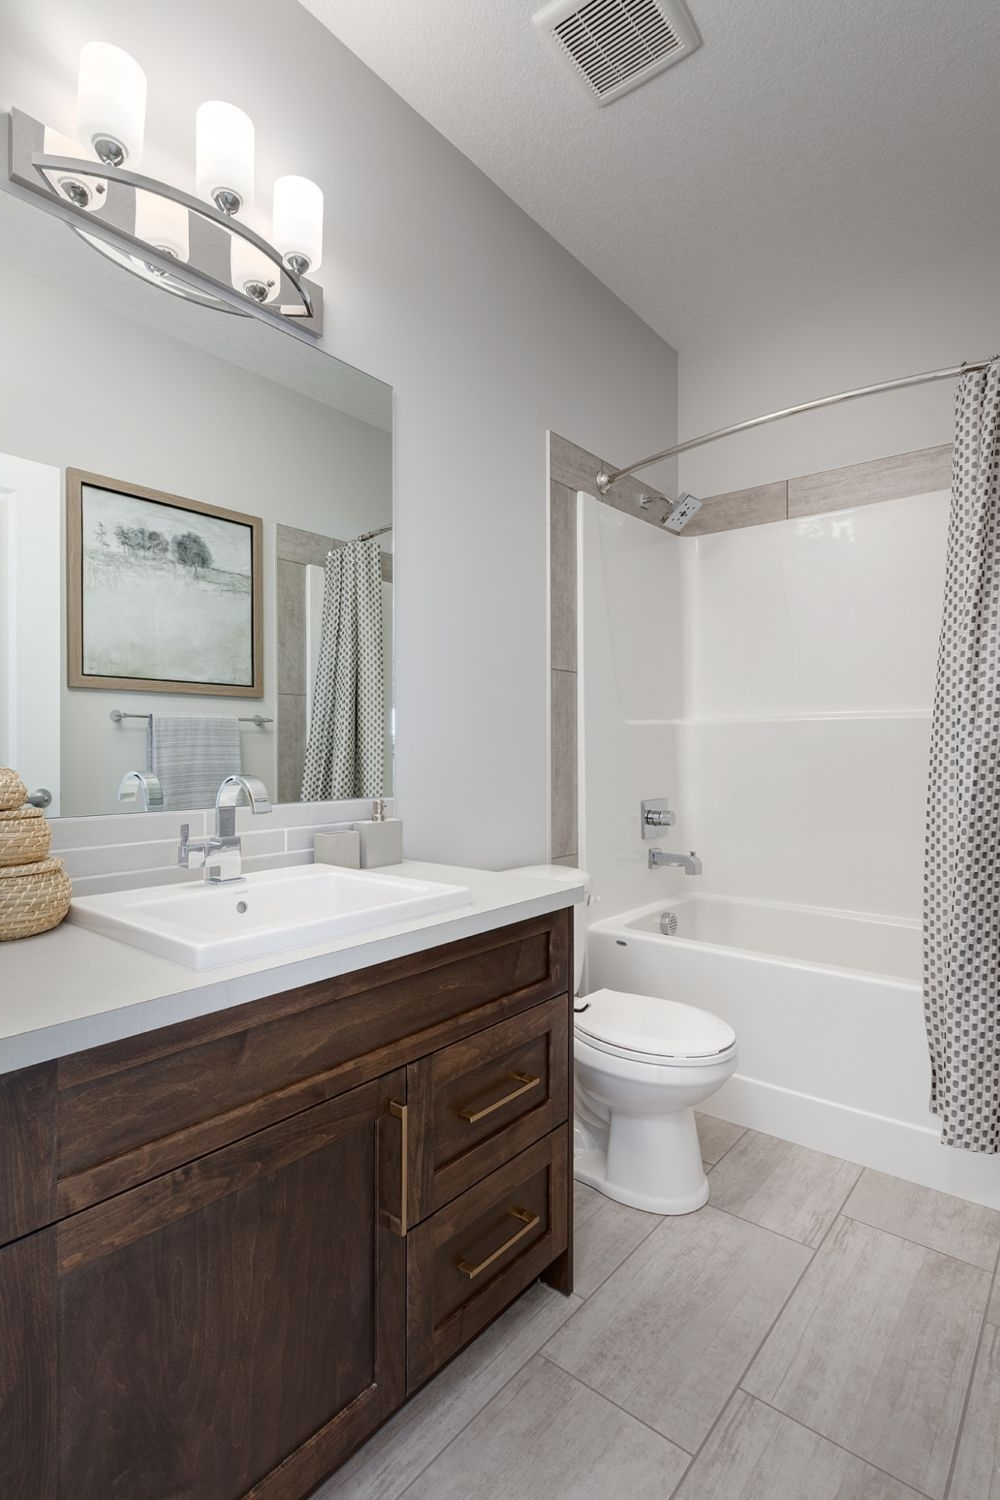 See More Of This Home: Stanley Livingston Bathroom | Home 20+ Bathroom Design Livingston Inspirations